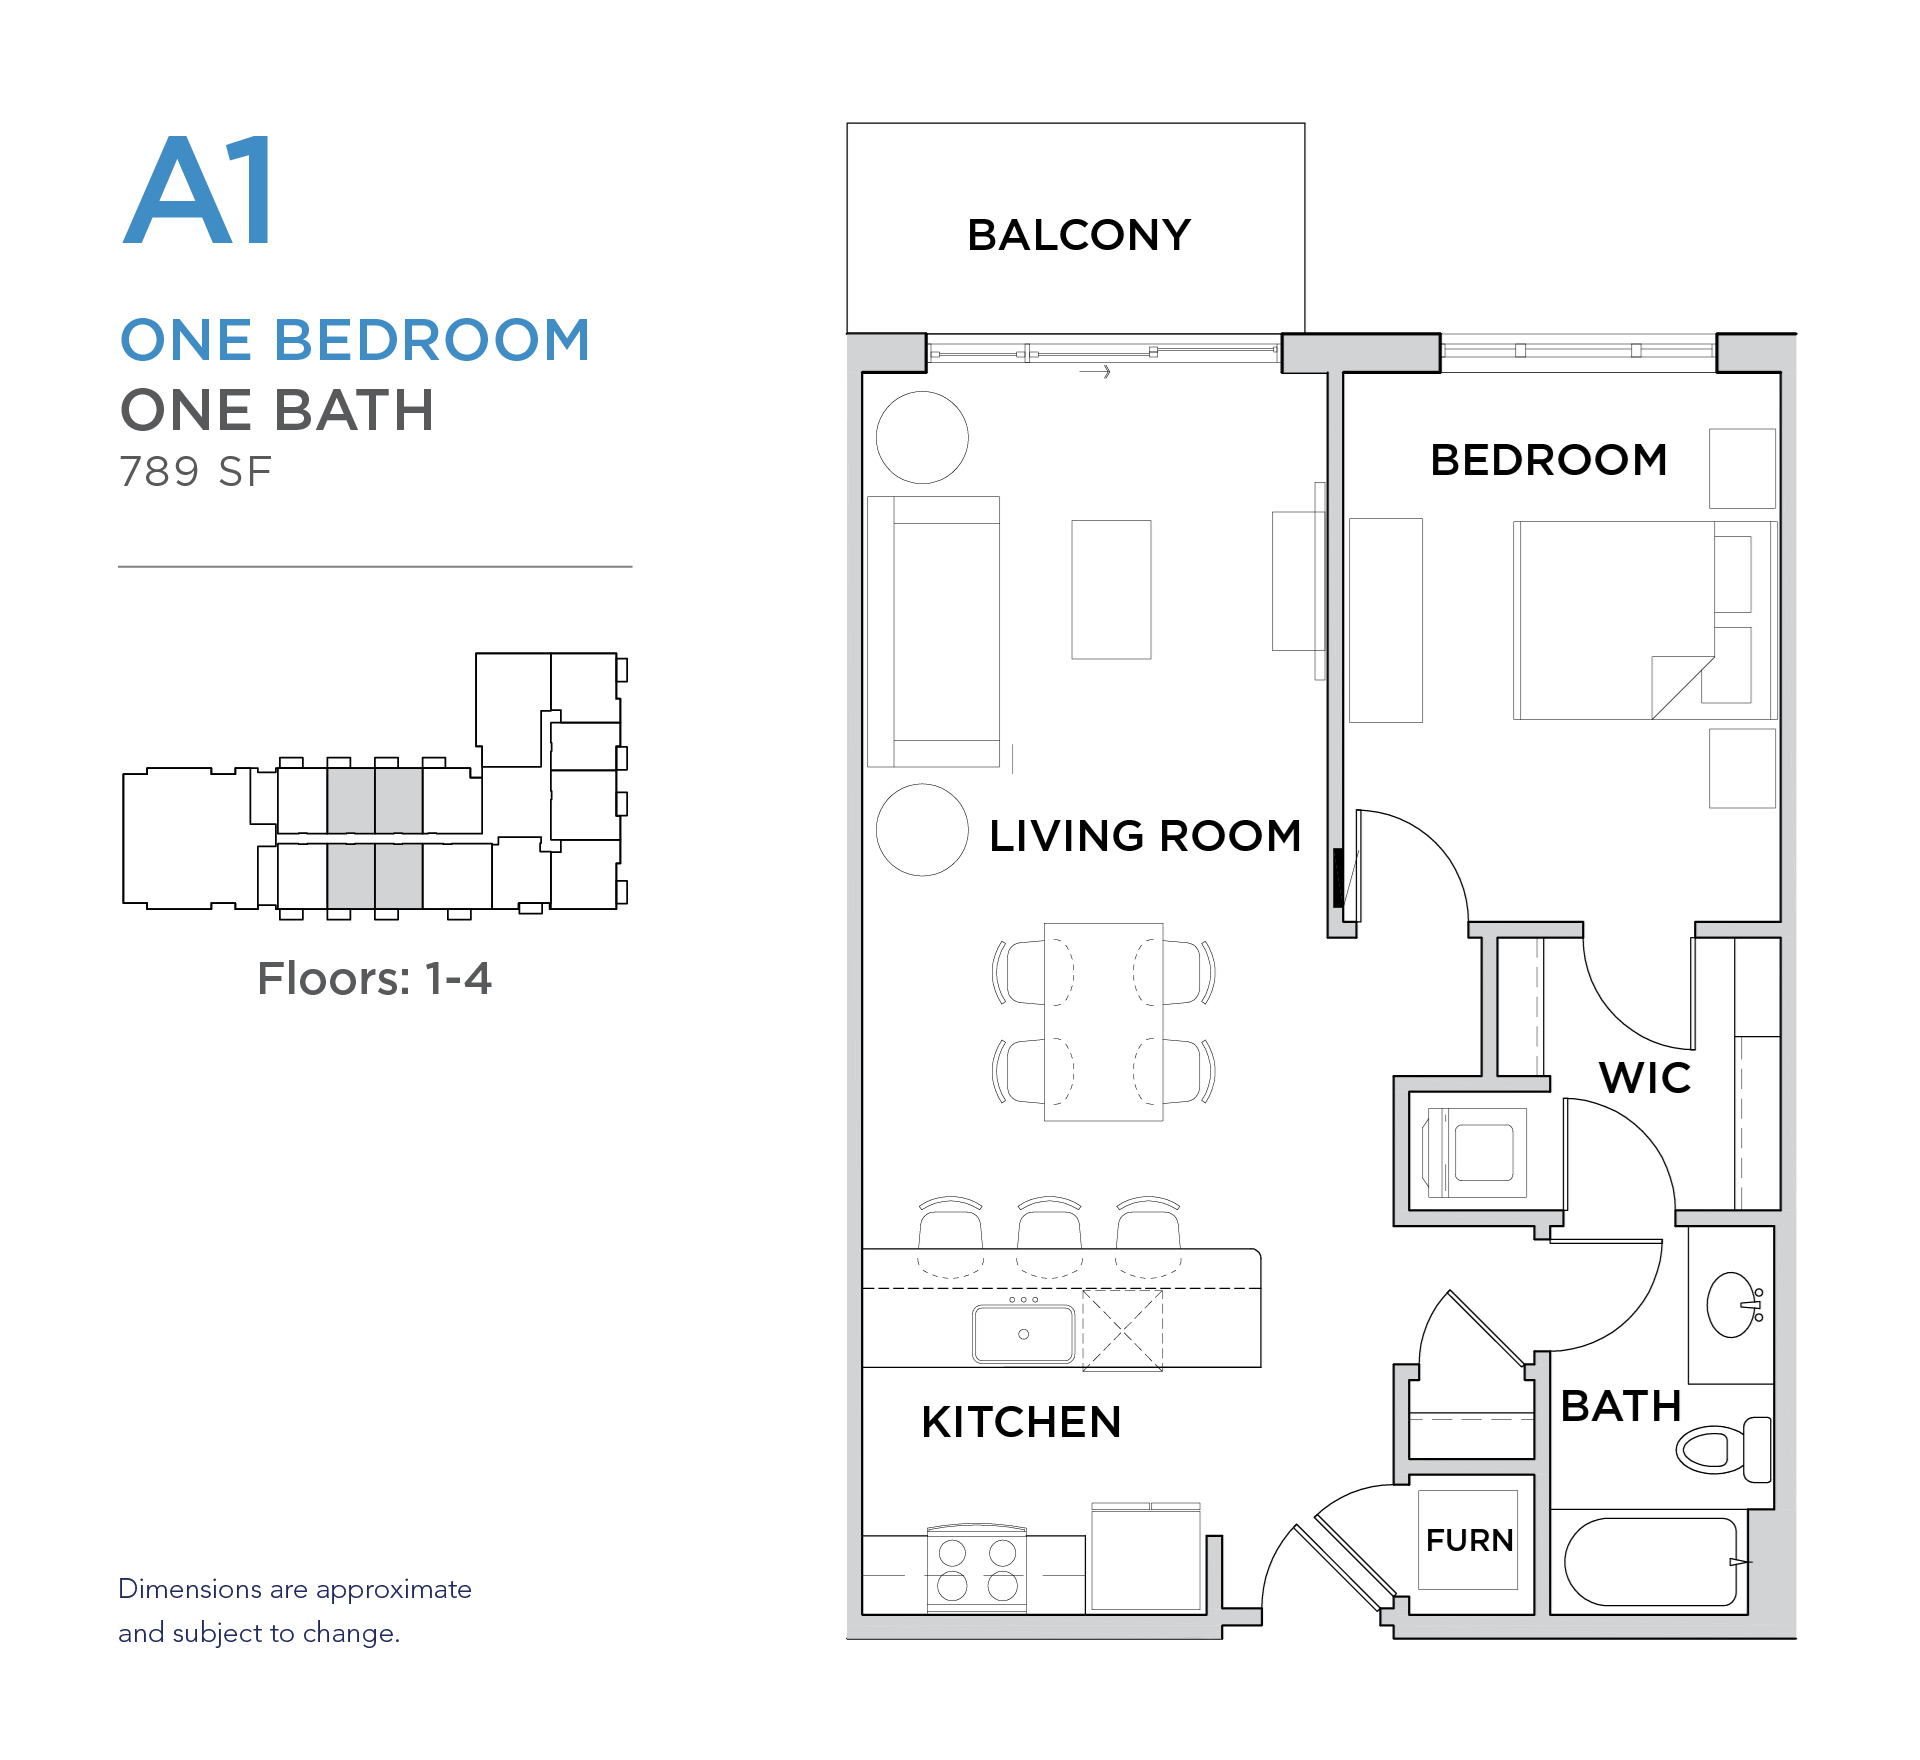 101 West 1 bed 1 bath 789 square foot apartment floor plan